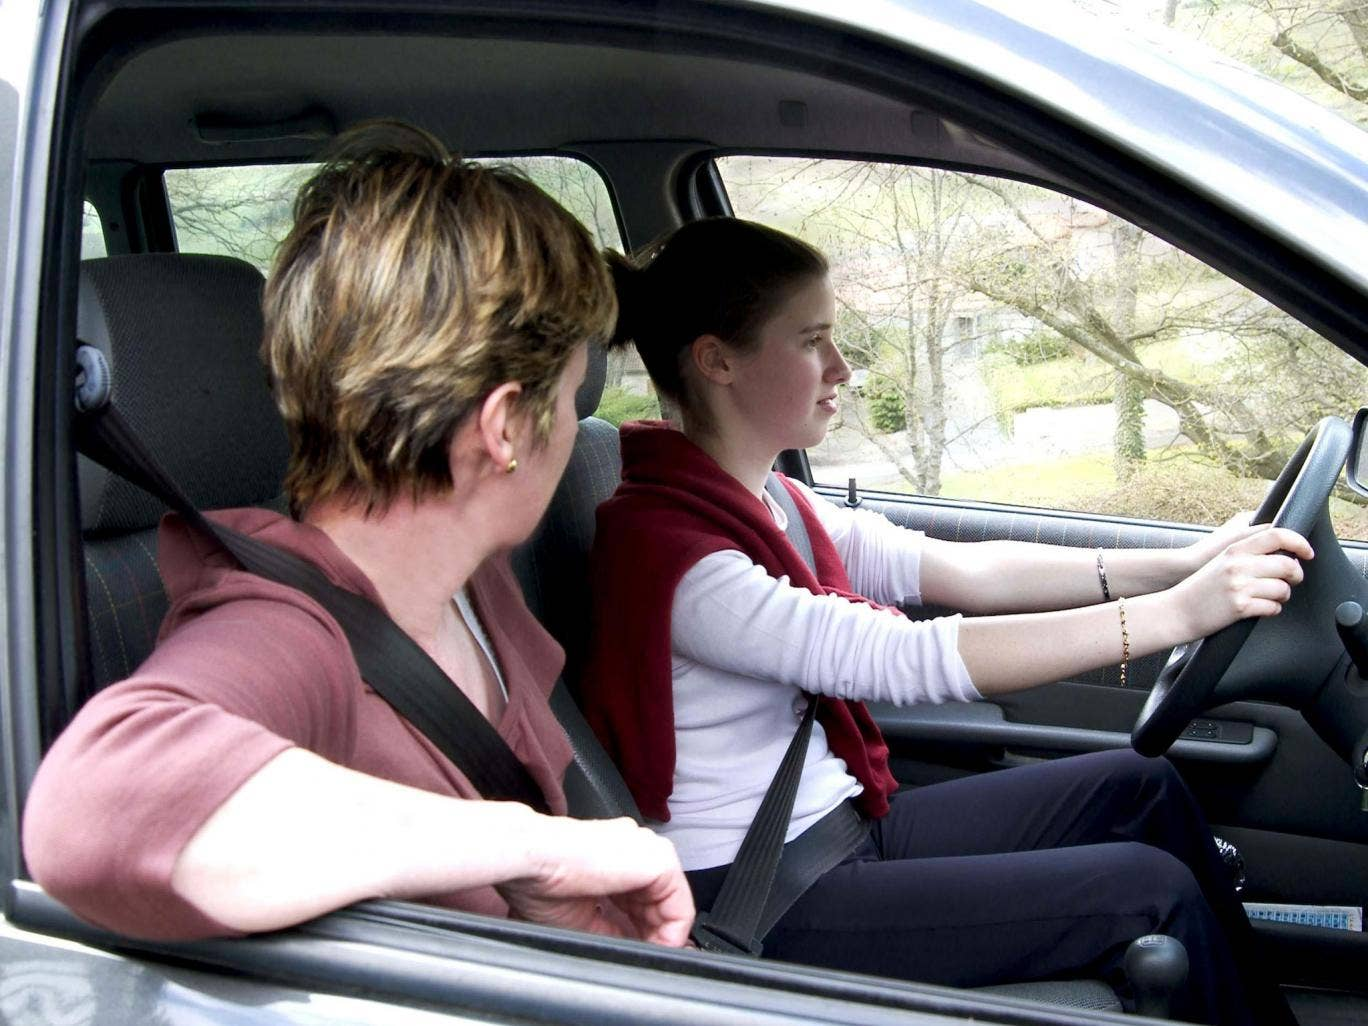 Parents are not as good as professional driving instructors